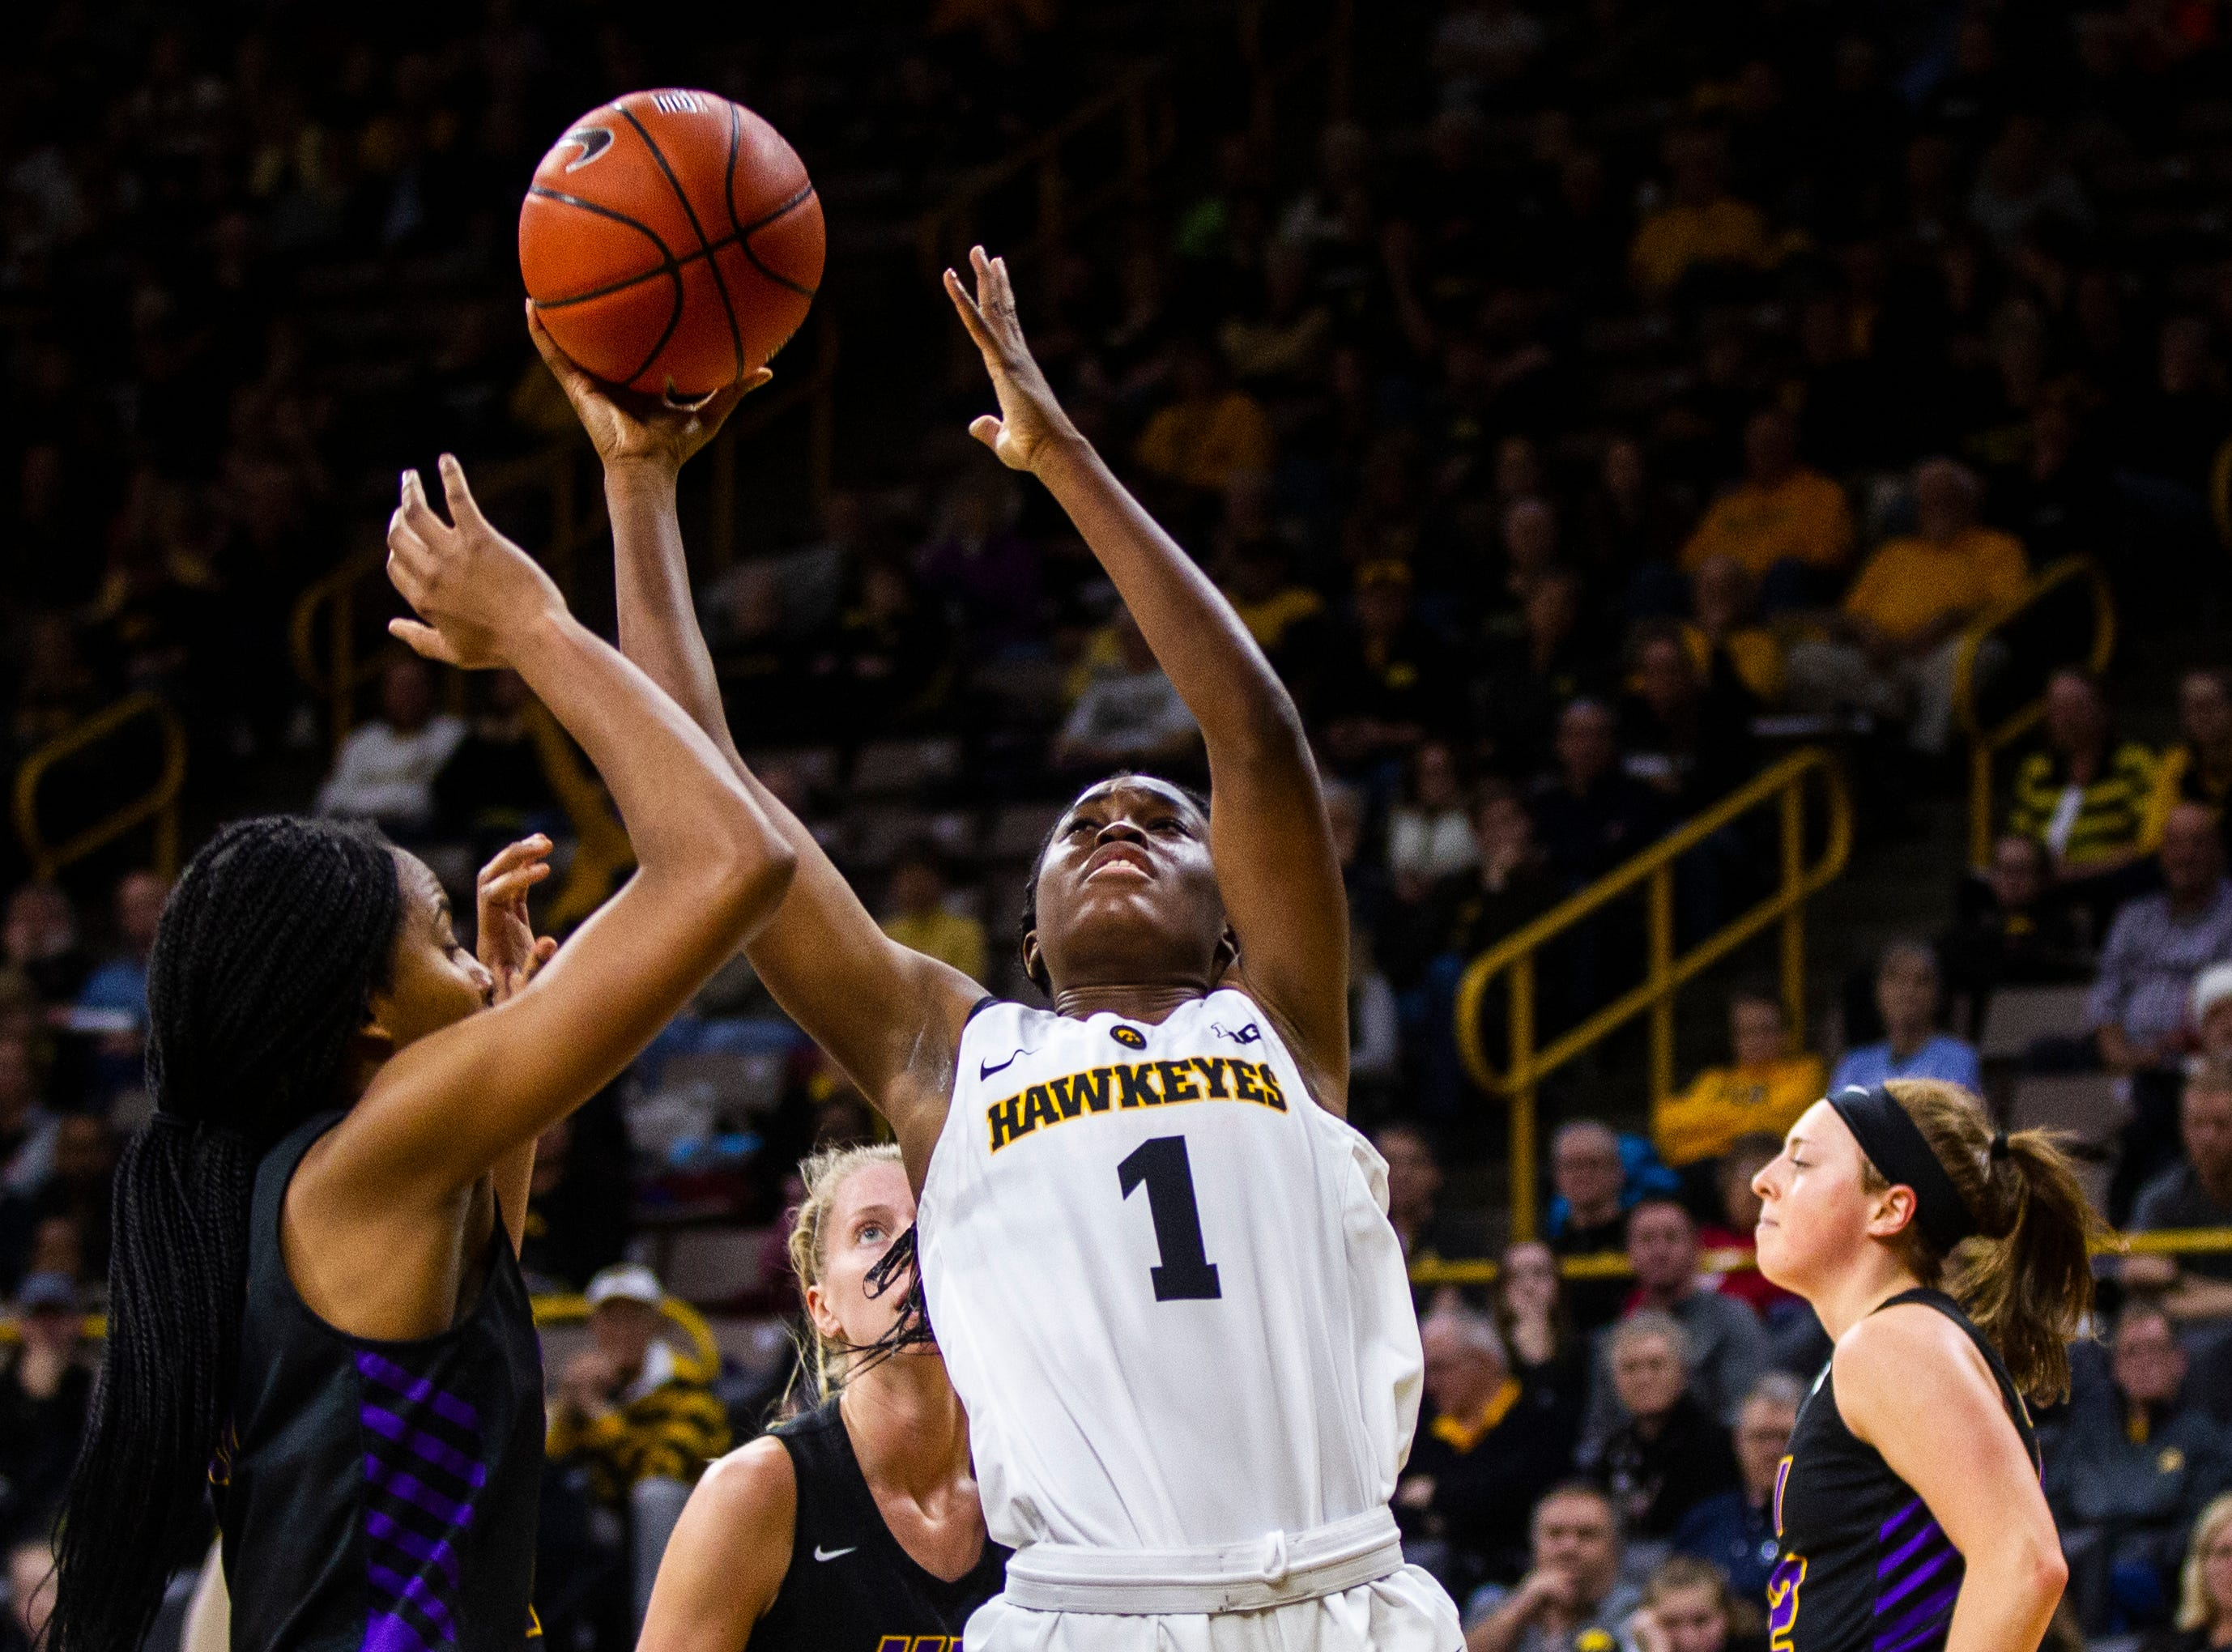 Iowa guard Tomi Taiwo (1) gets fouled during a NCAA women's basketball game on Sunday, Dec. 16, 2018, at Carver-Hawkeye Arena in Iowa City.